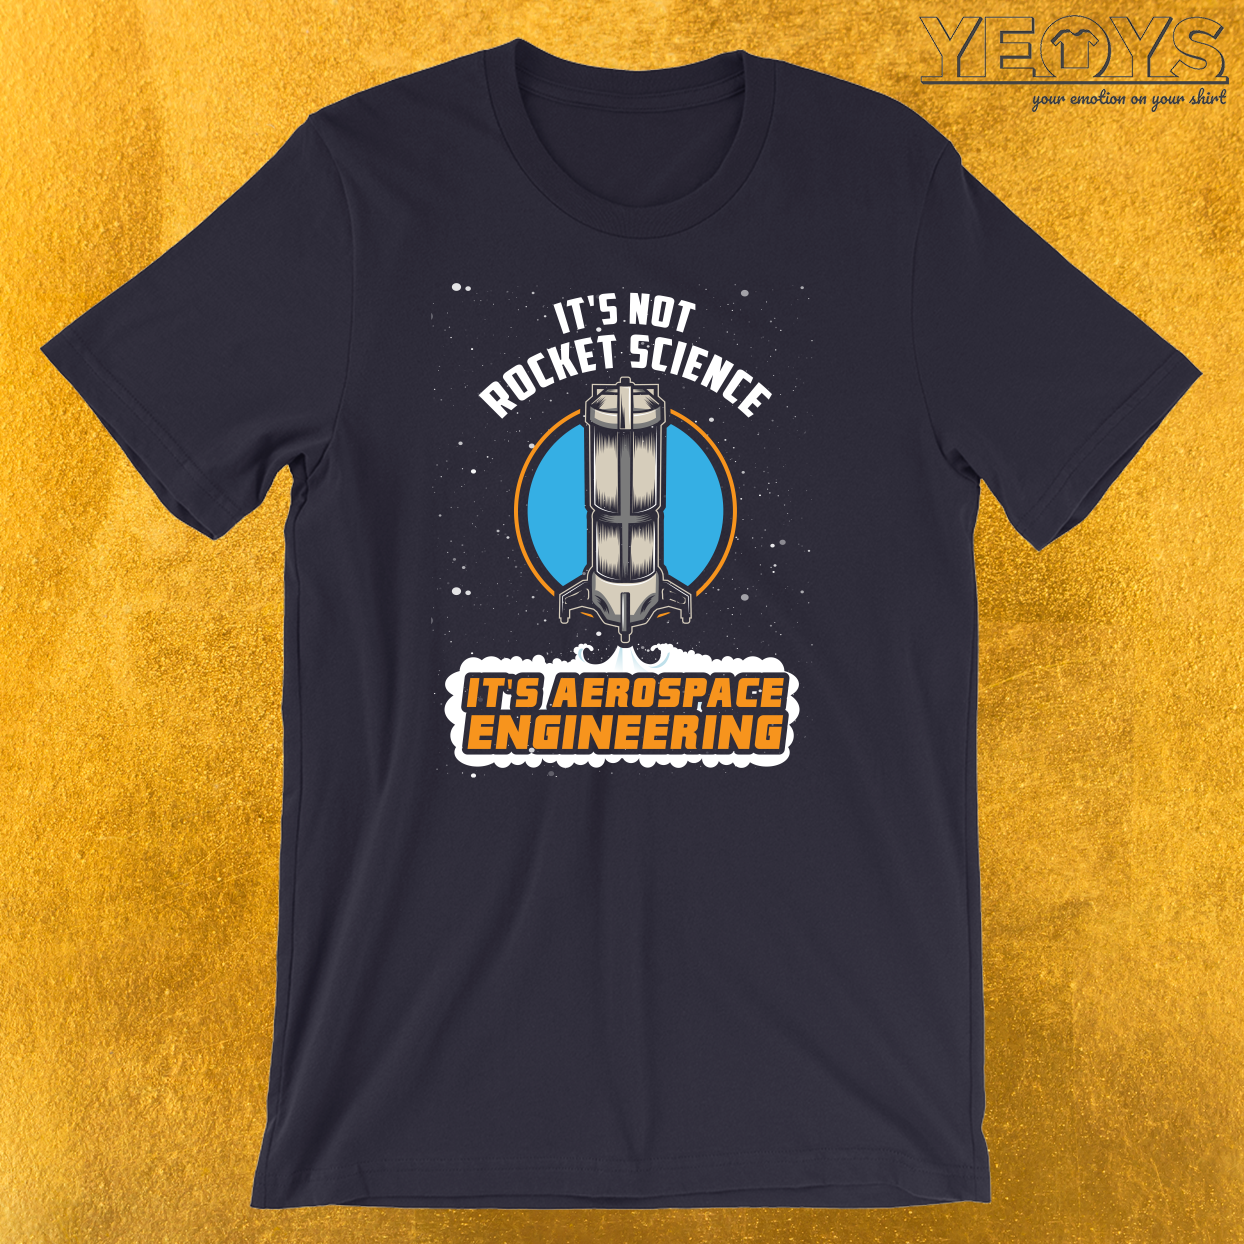 Rocket Science Aerospace Engineering T-Shirt